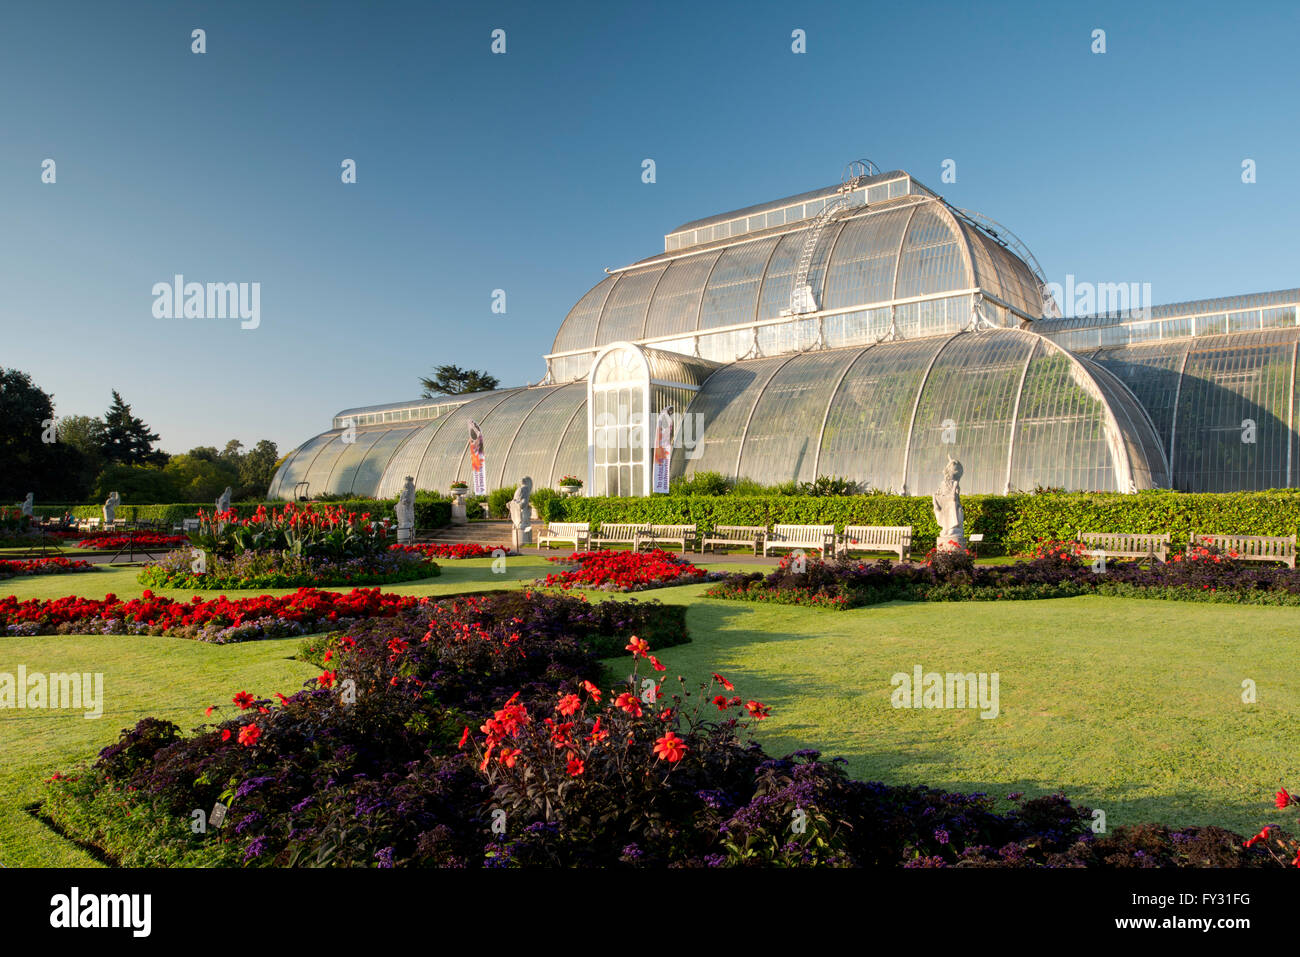 Dahlia 'Bishop of Llandaff' and Heliotropium arborescens 'Marine' in front of the Palm House at - Stock Image